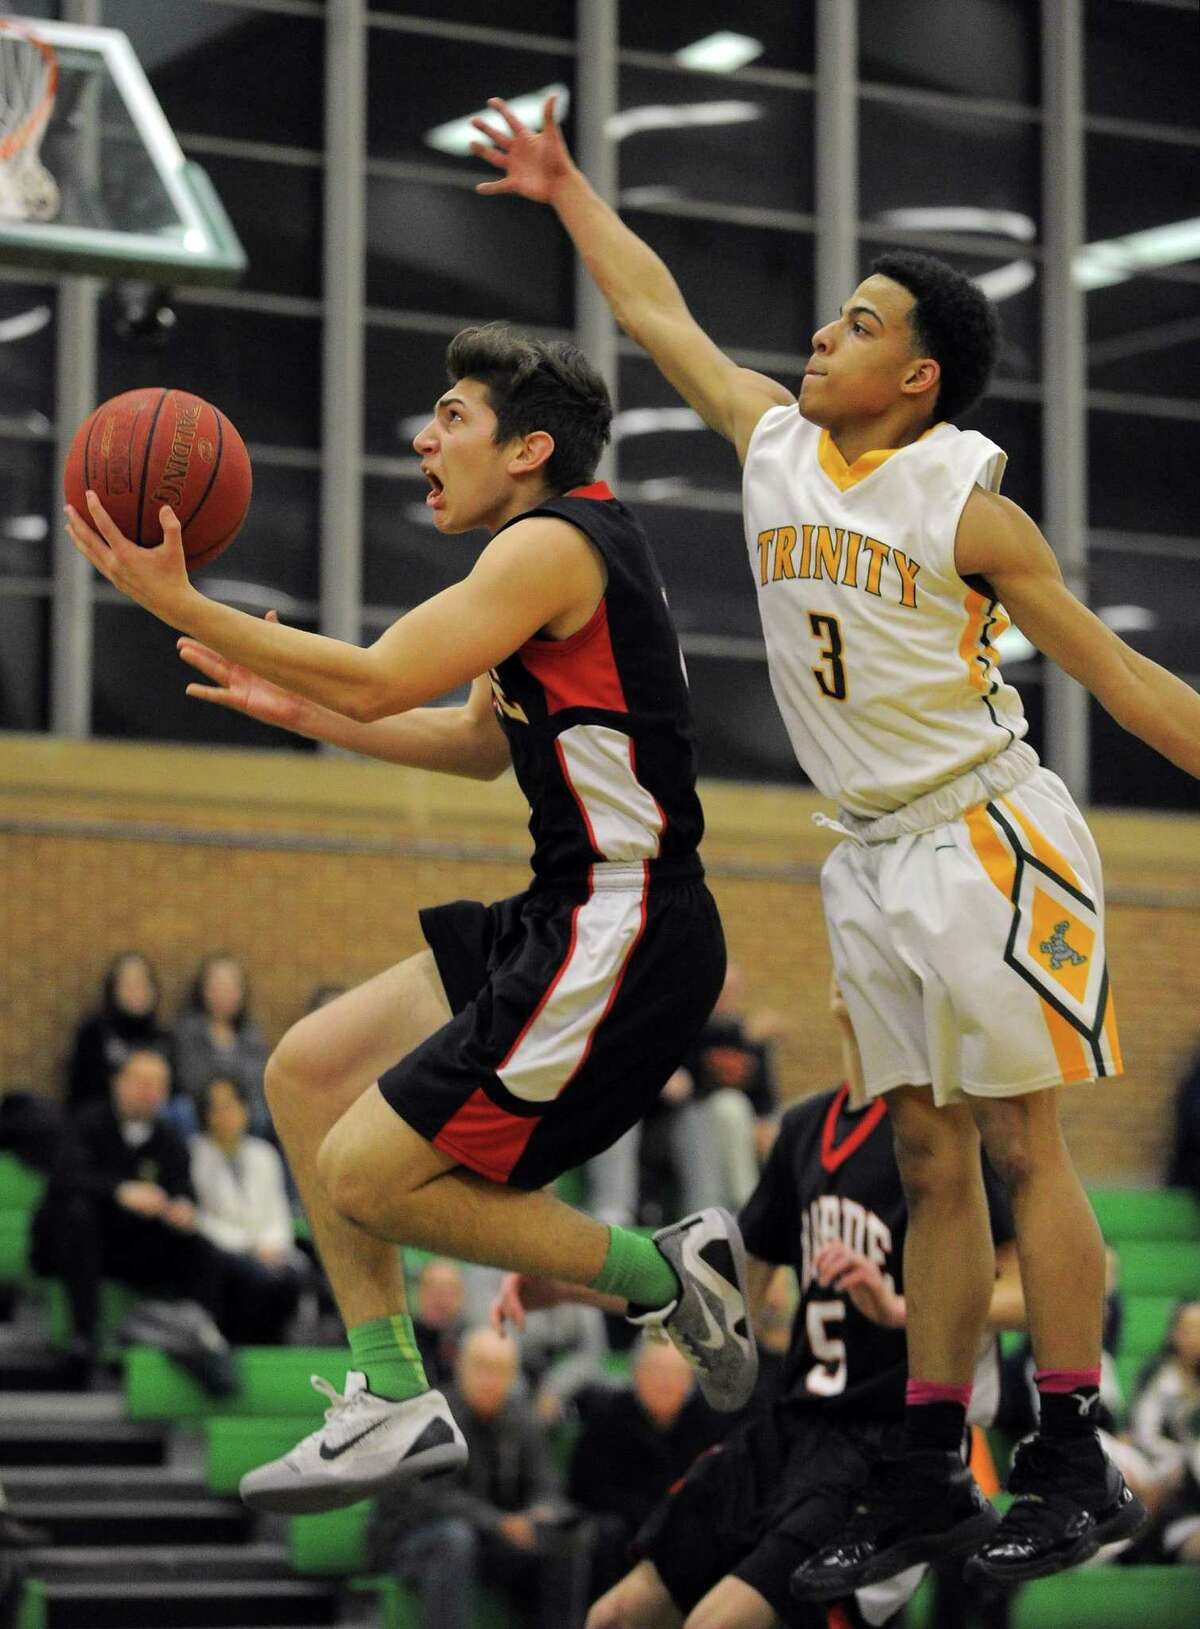 Warde Antonio Brancatoputs up a shot against Trinity Cameron Blake during a boys basketball game at Trinity Catholic High Schools Walsh Court in Stamford on Feb. 3, 2017. Warde defeated Trinity 67-60.